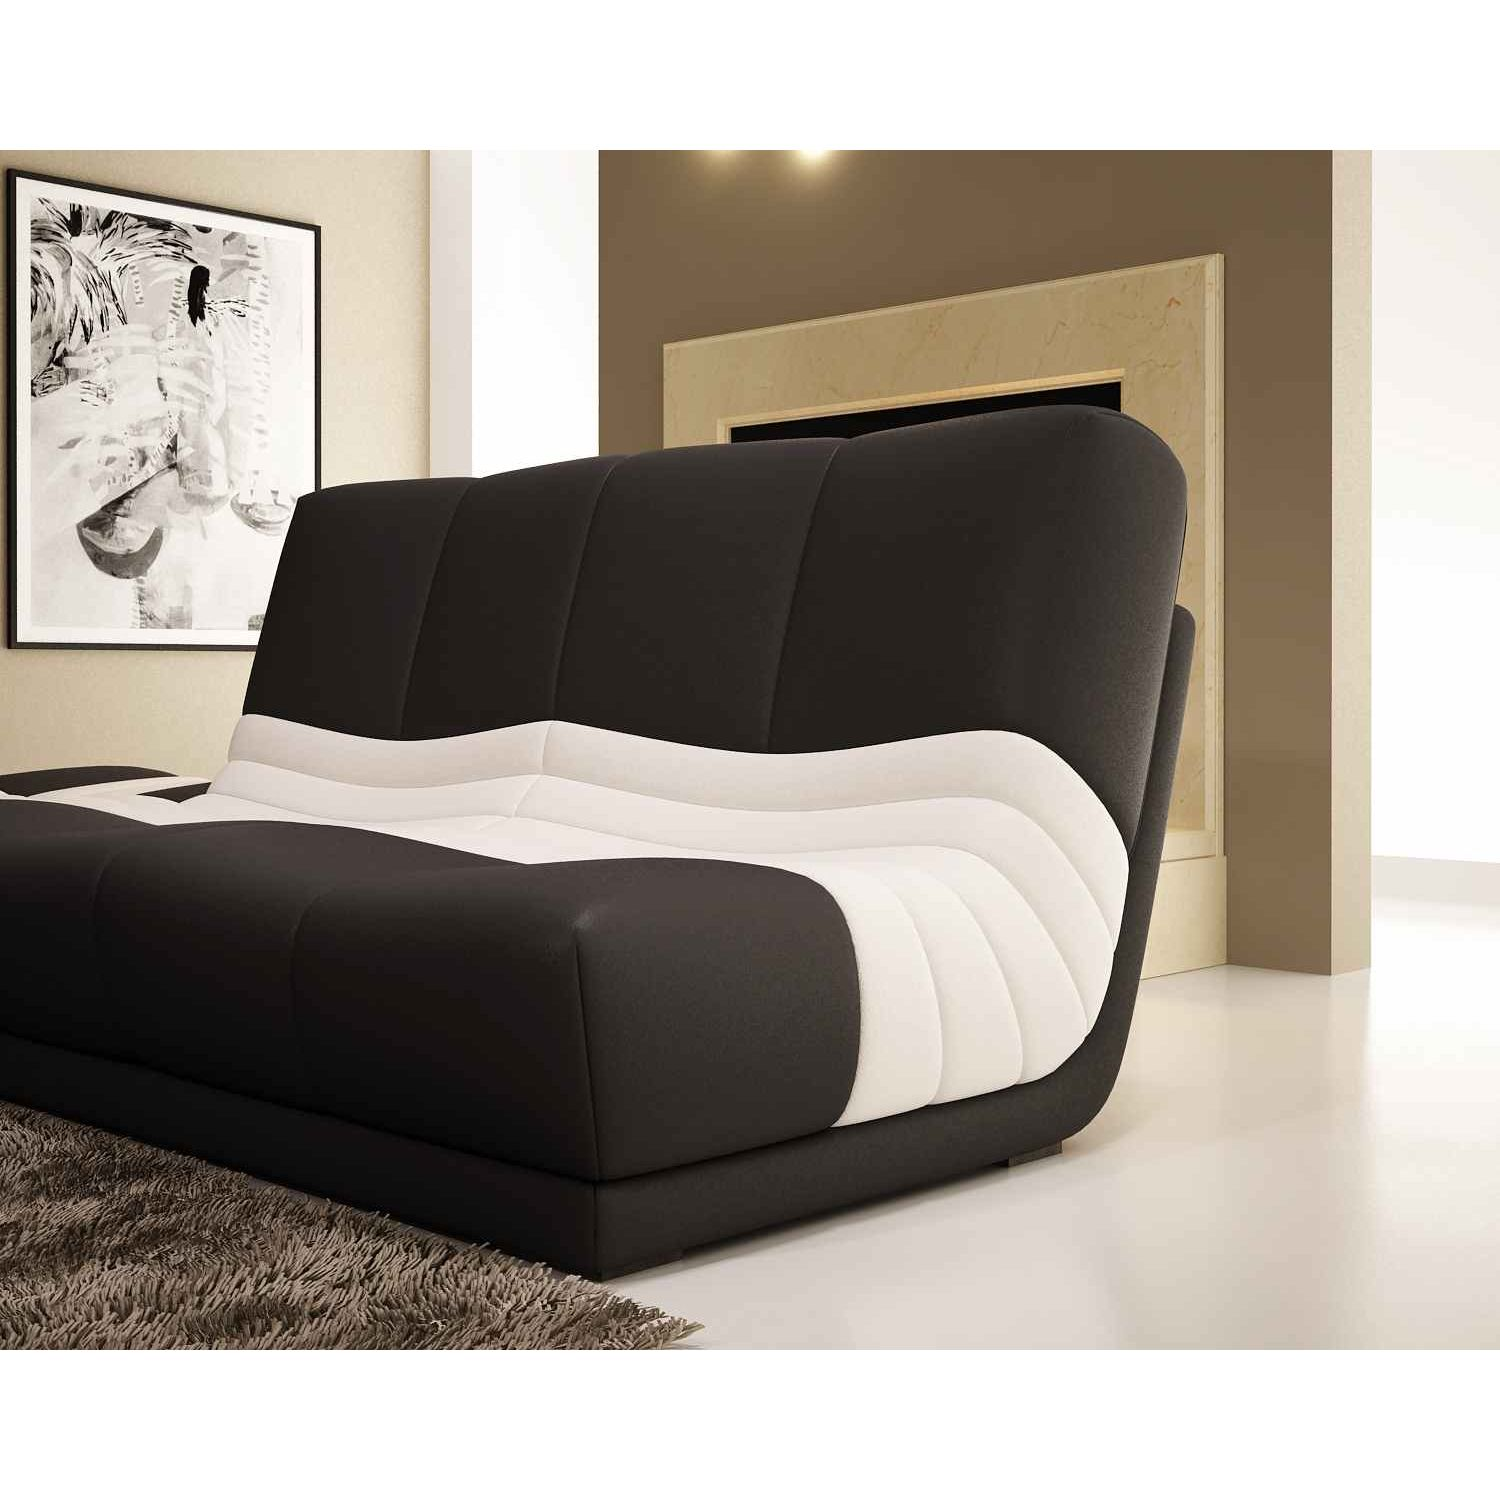 deco in paris canape d angle fauteuil modulable en cuir noir et blanc caprice caprice noir. Black Bedroom Furniture Sets. Home Design Ideas